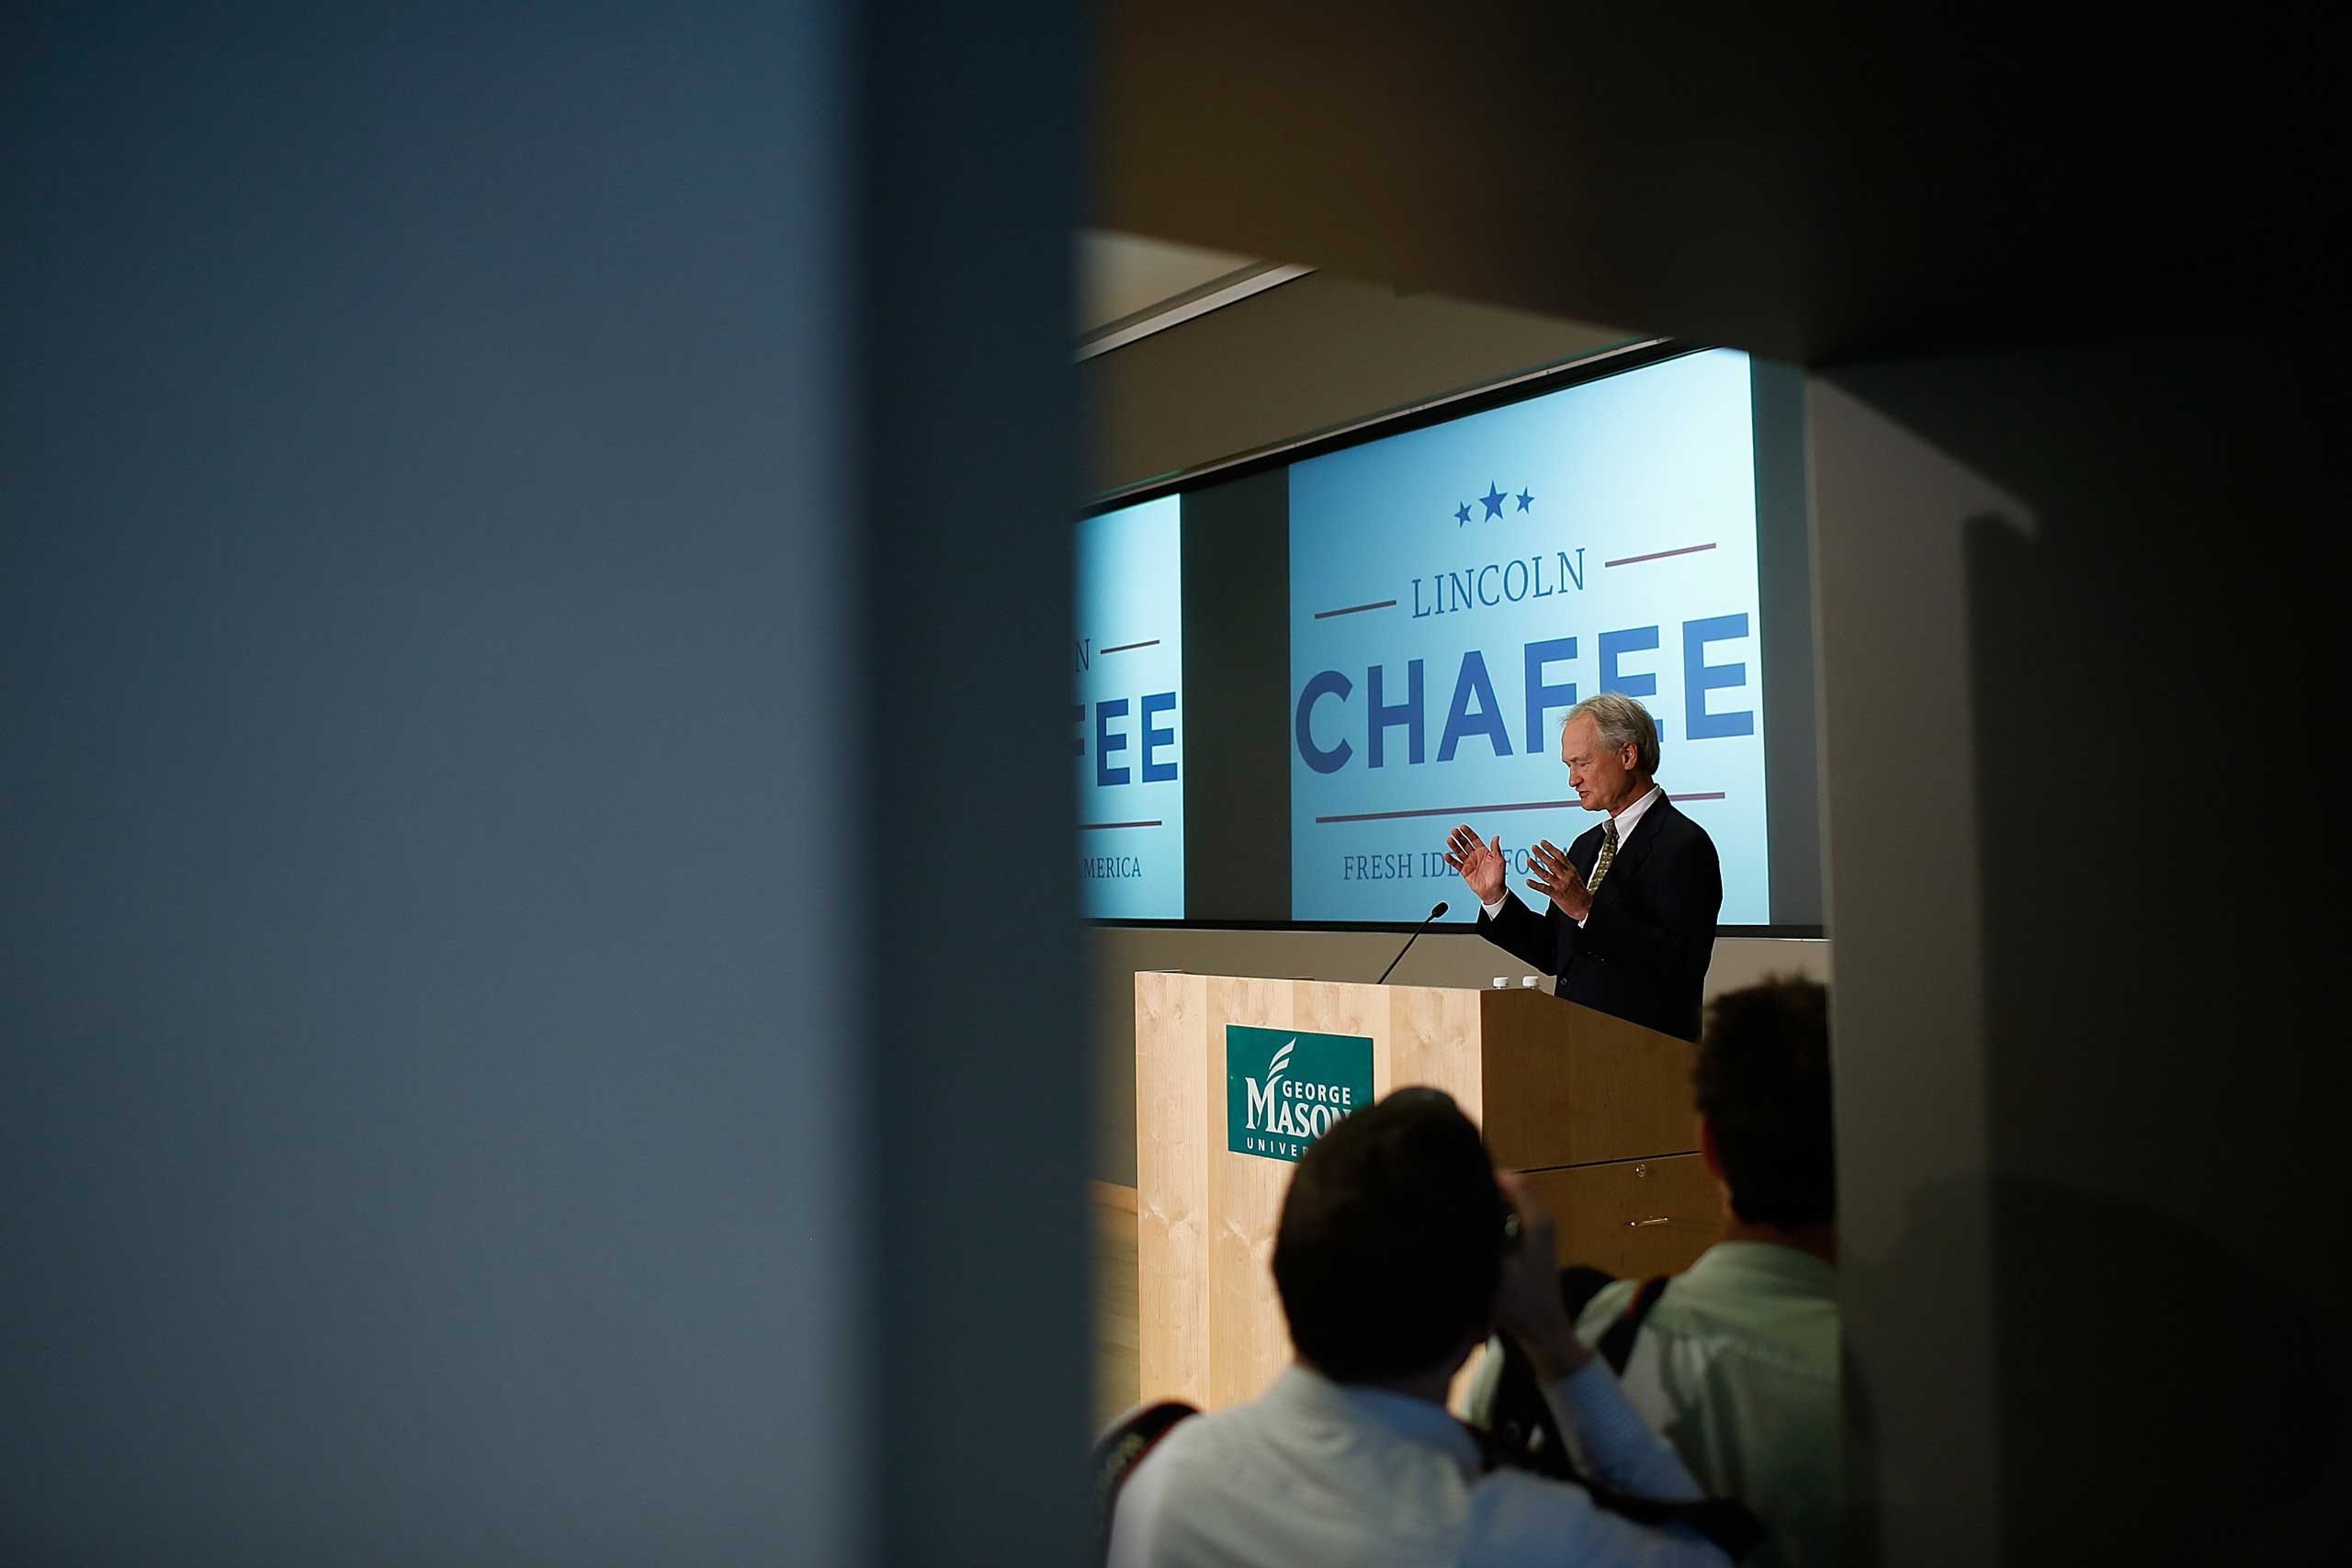 Former Rhode Island Sen. Lincoln Chafee announces his candidacy for the democratic presidential nomination at George Mason University in Arlington, Va. on June 3, 2015.